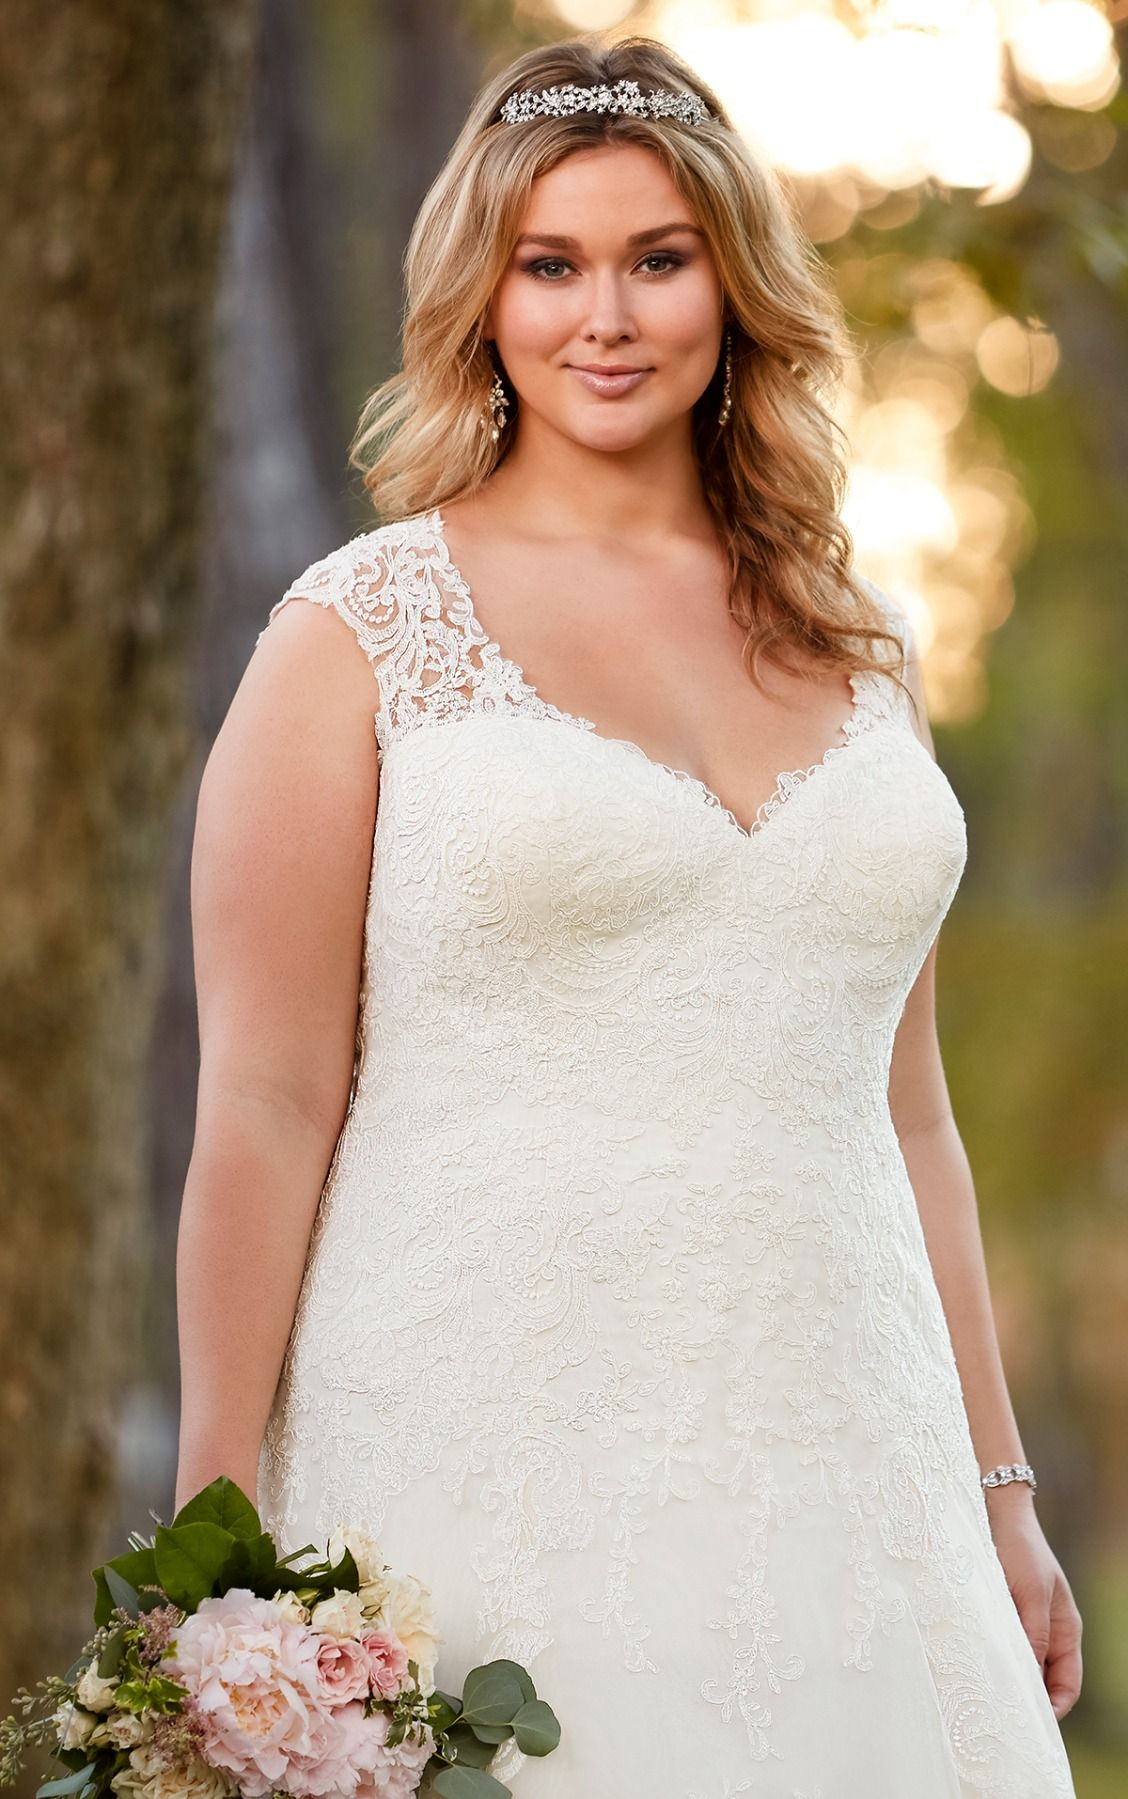 ALine Sweetheart Wedding Dress  Hunter McGrady  Pinterest